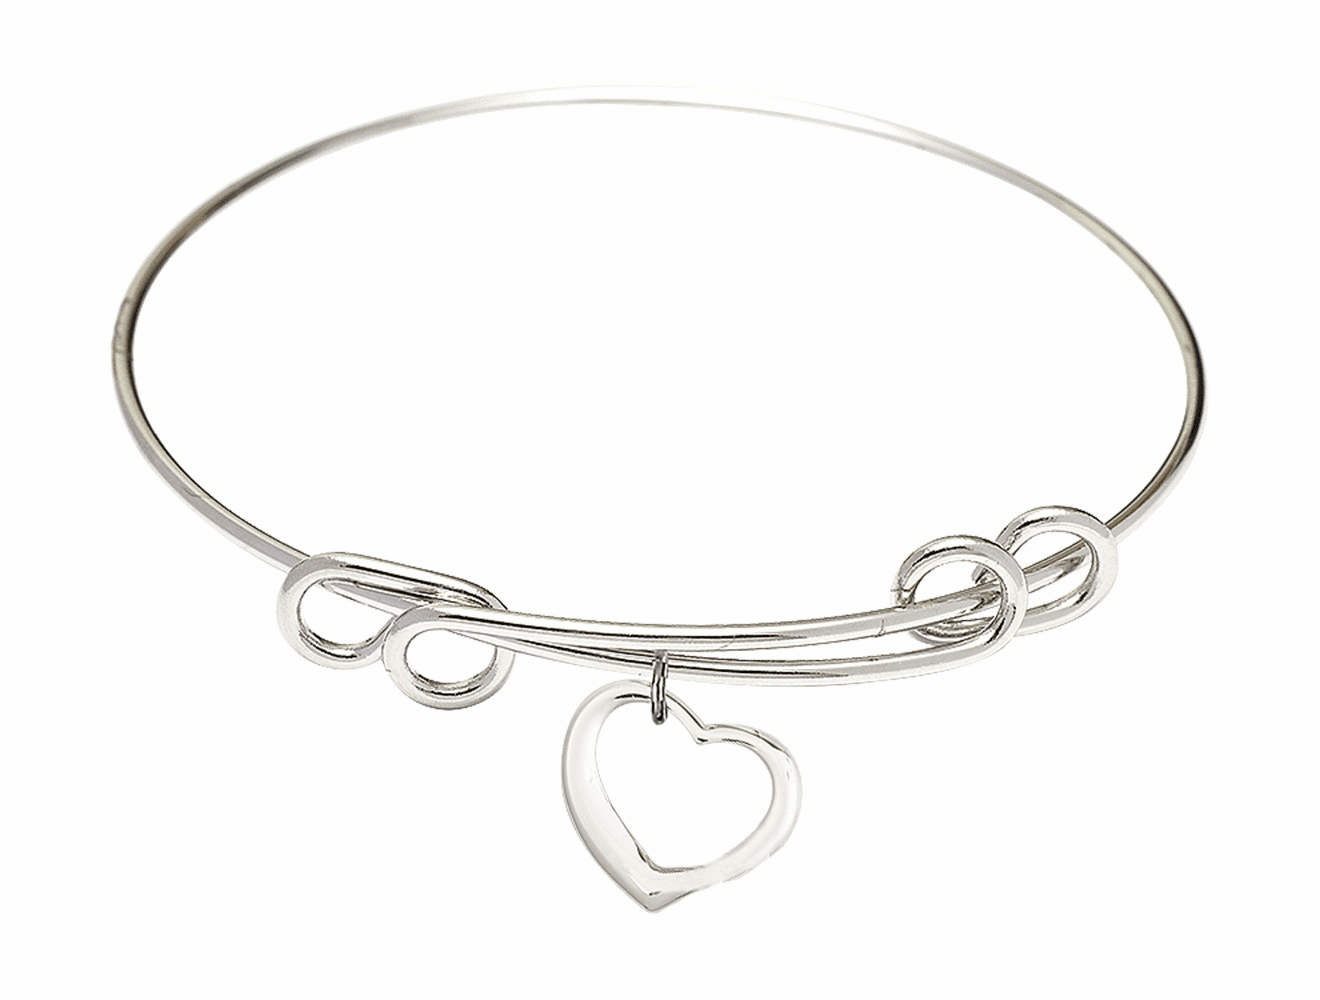 Round Double Loop Bangle Bracelet w/Heart Shaped Sterling Silver Charm by Bliss Mfg